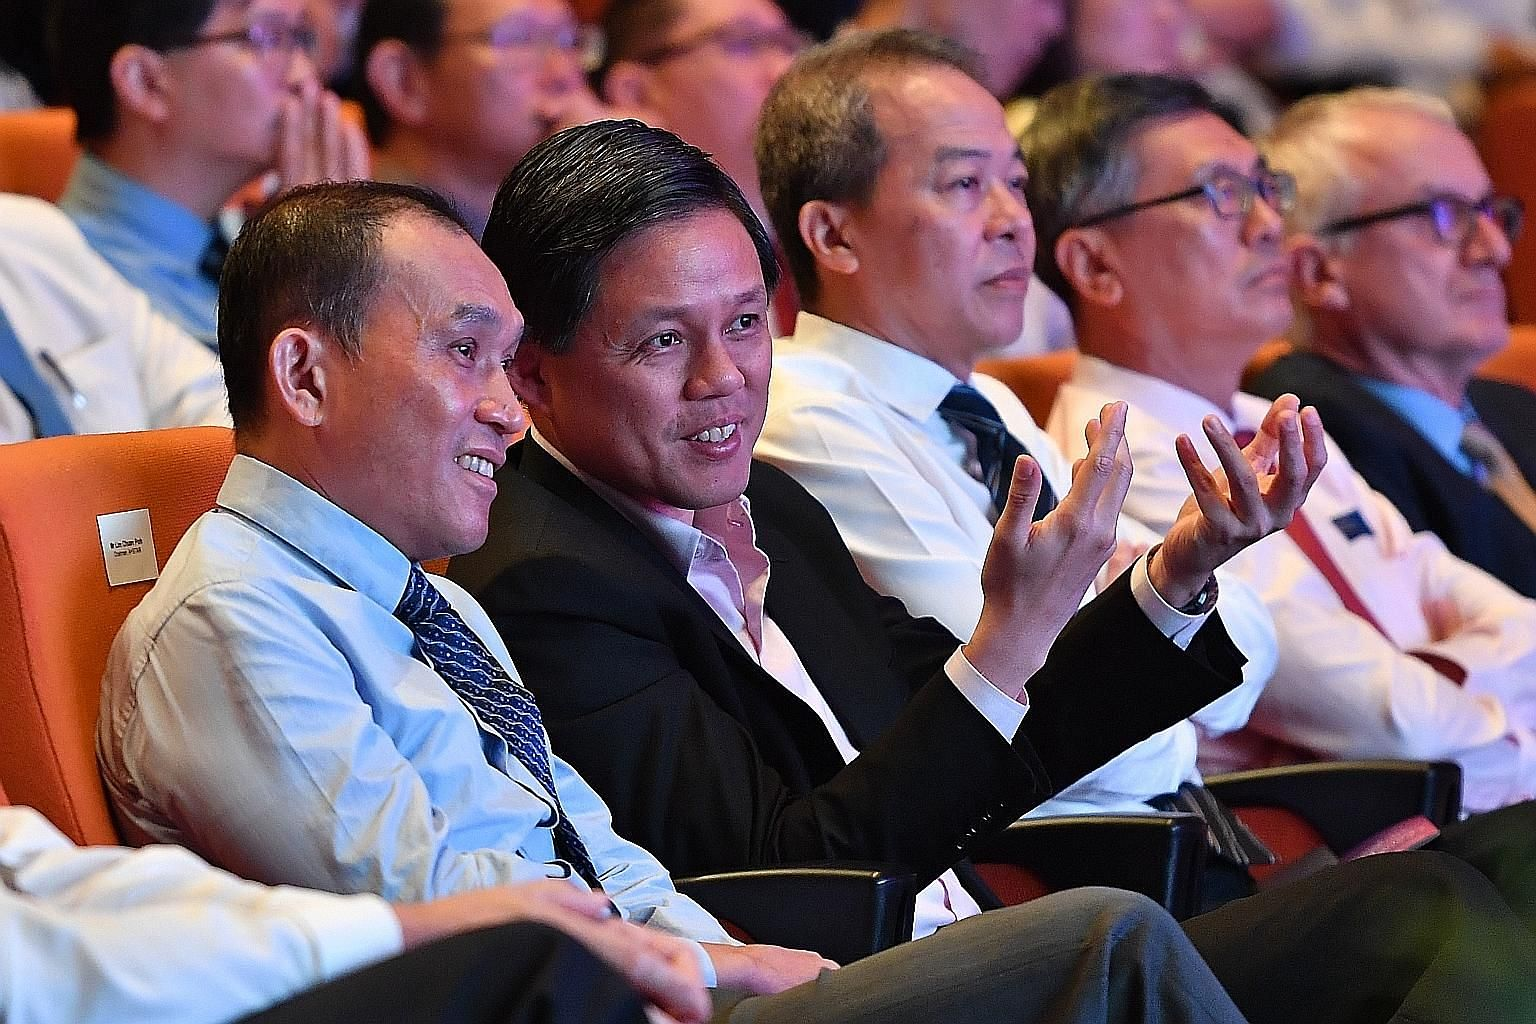 Minister Chan Chun Sing with A*Star chairman Lim Chuan Poh (far left) at the Leaders in Science Forum.